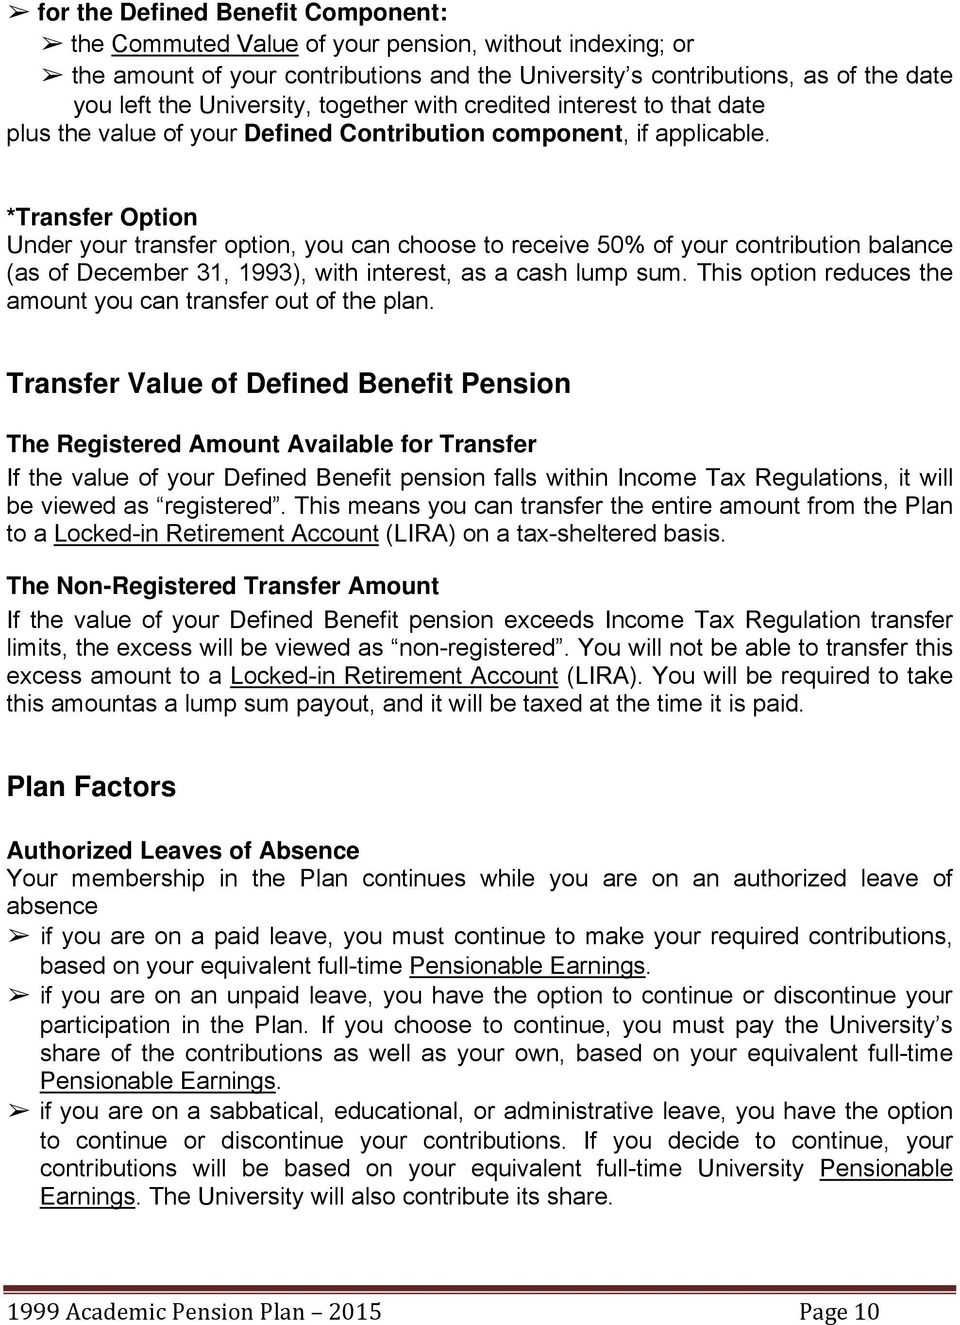 *Transfer Option Under your transfer option, you can choose to receive 50% of your contribution balance (as of December 31, 1993), with interest, as a cash lump sum.